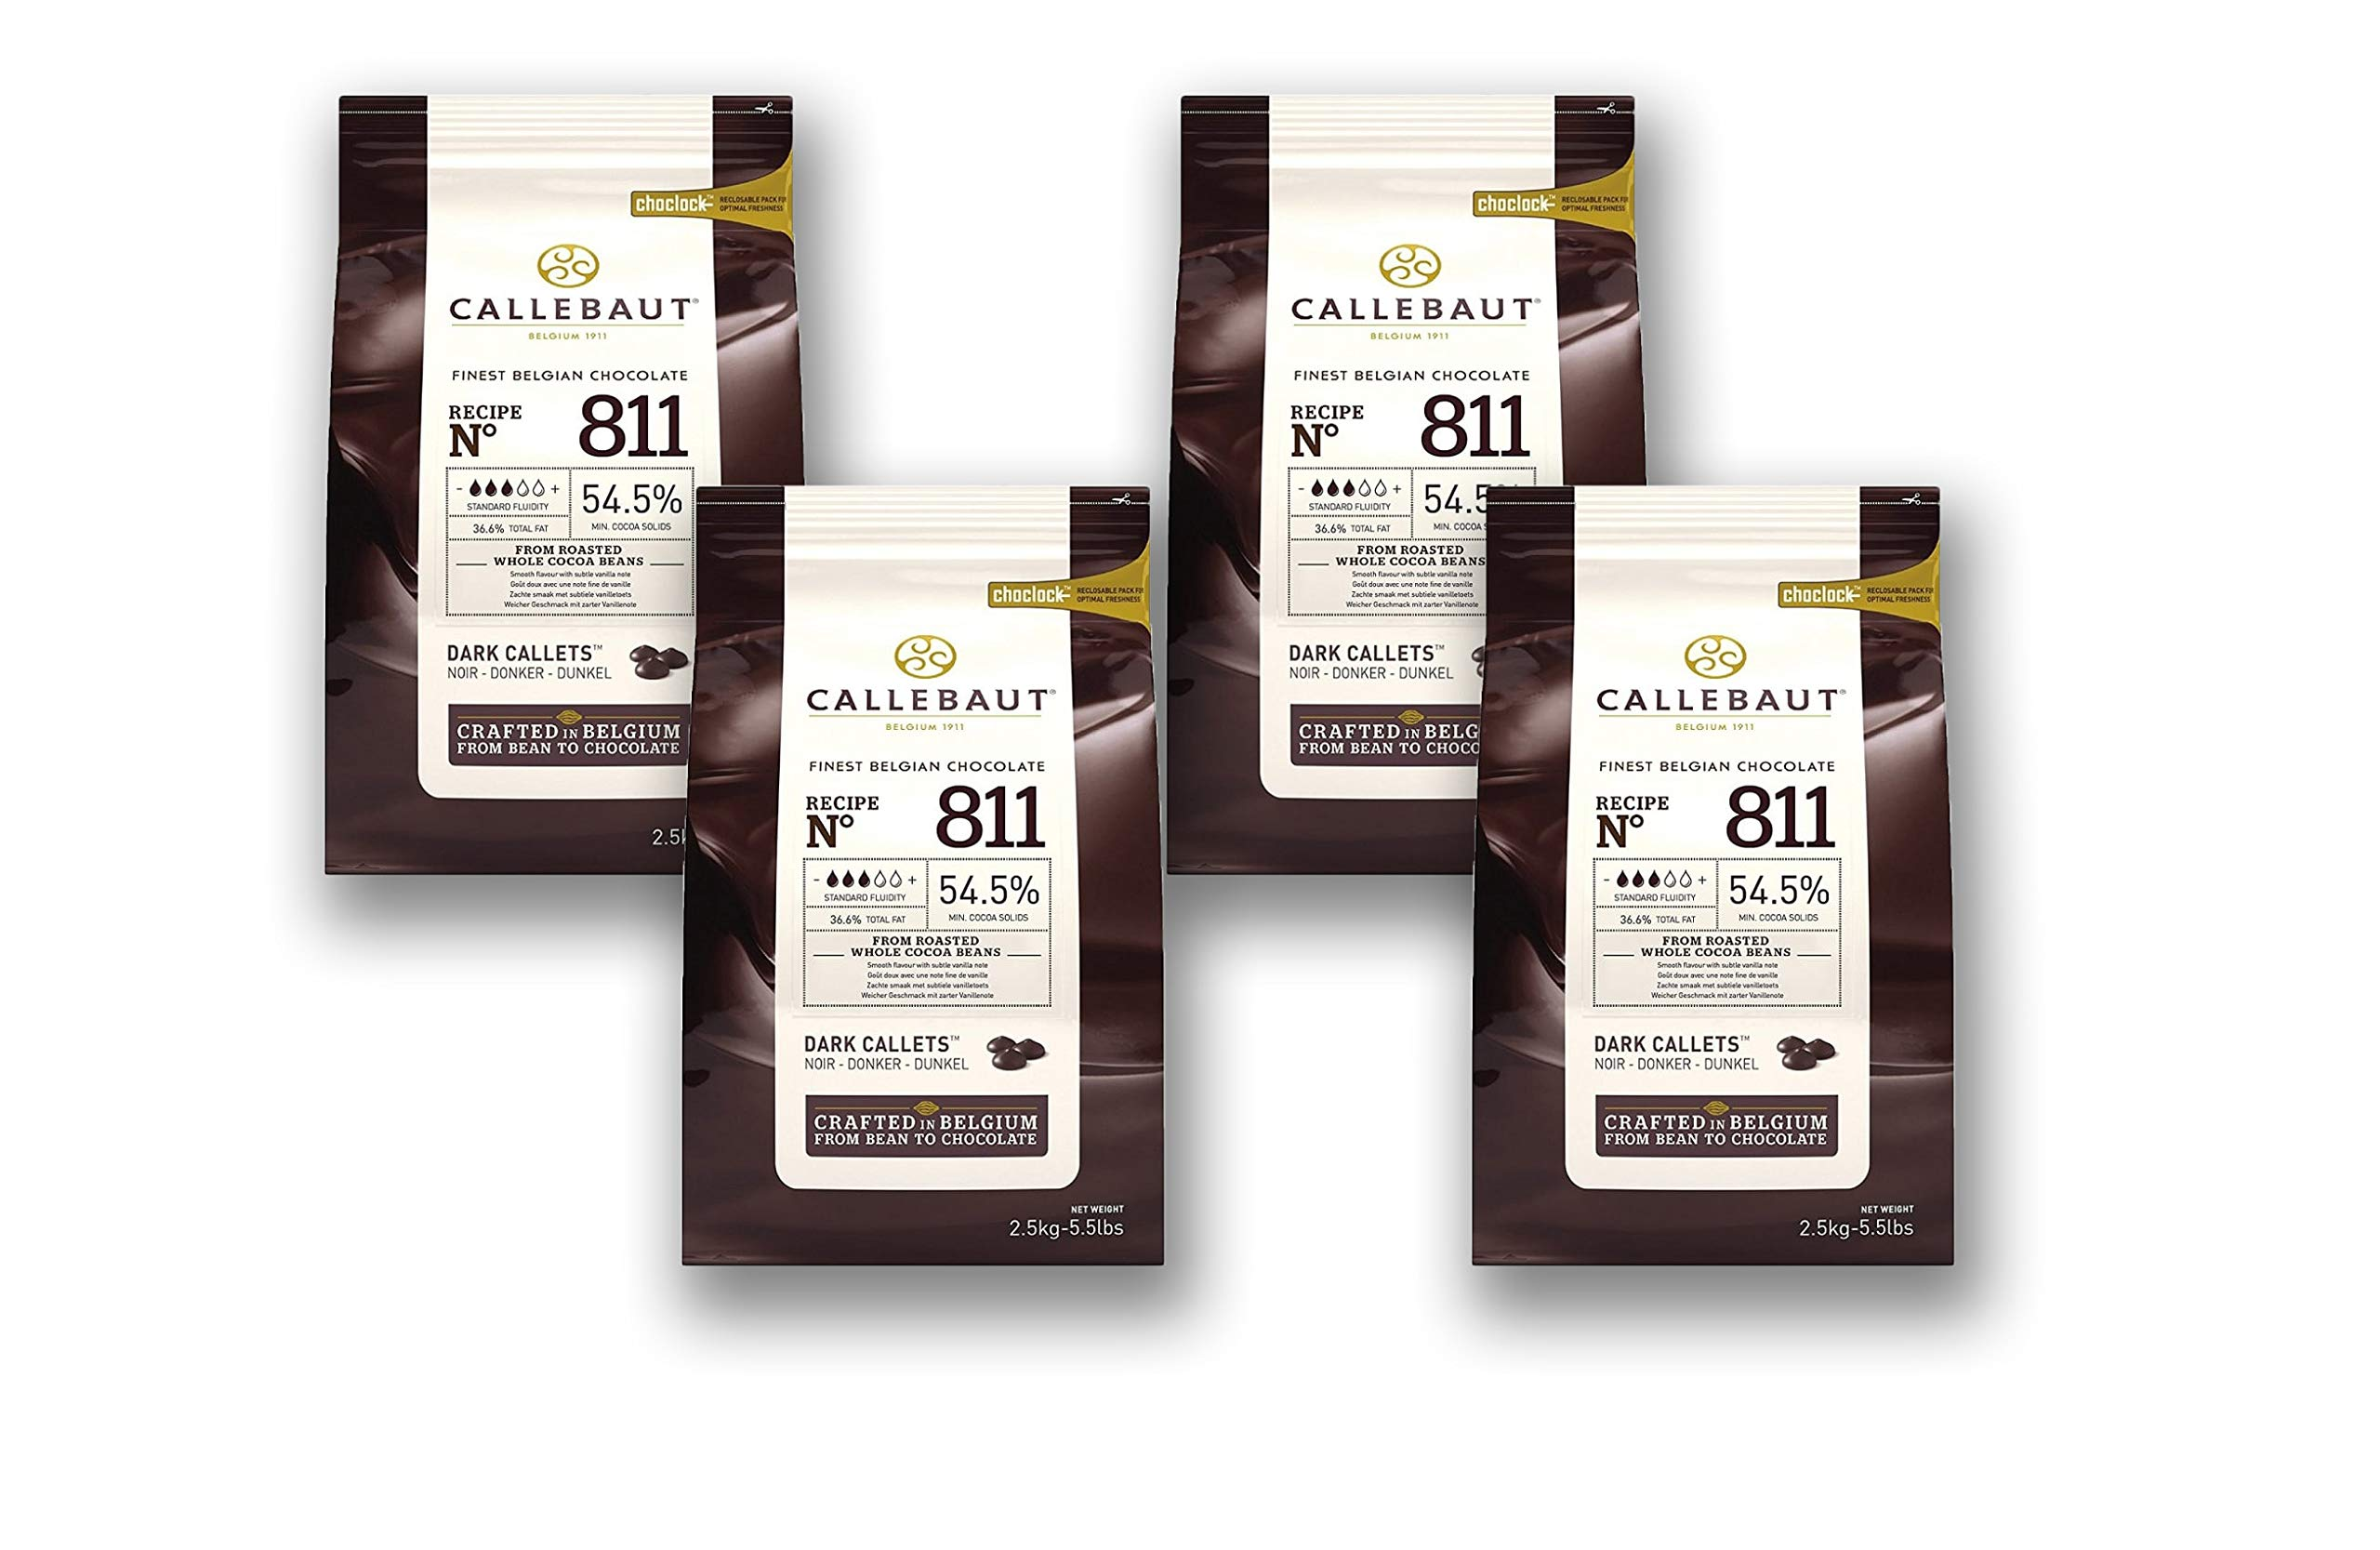 Callebaut Couverture Cacao Dark Baking Belgian Semisweet Chocolate Callets 4 pack. 54.5% Cacao. Recipe N811. (5.5 Lbs x 4; 10 kg)